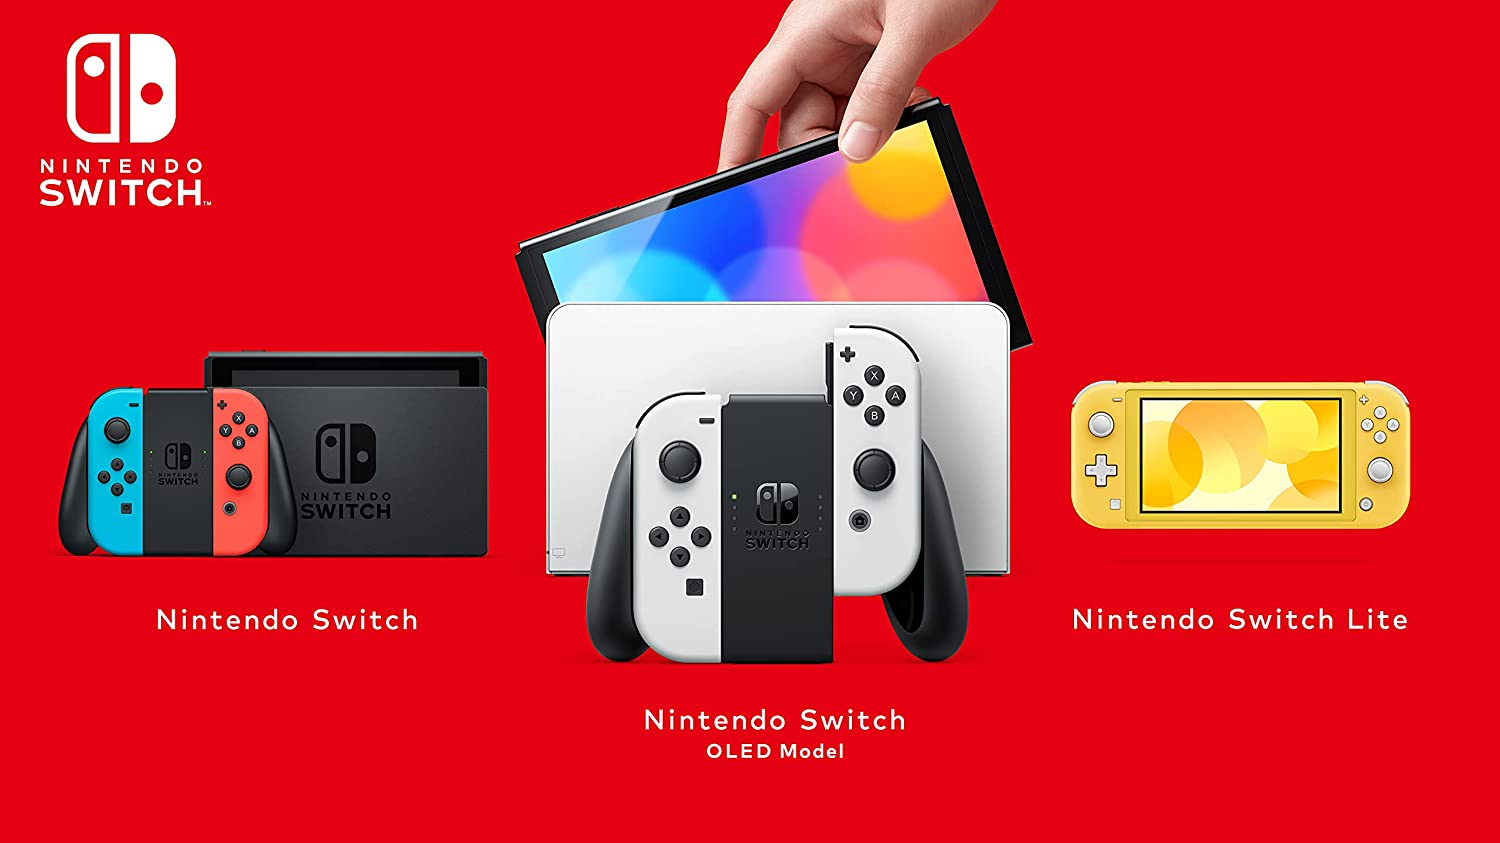 The three different Switches